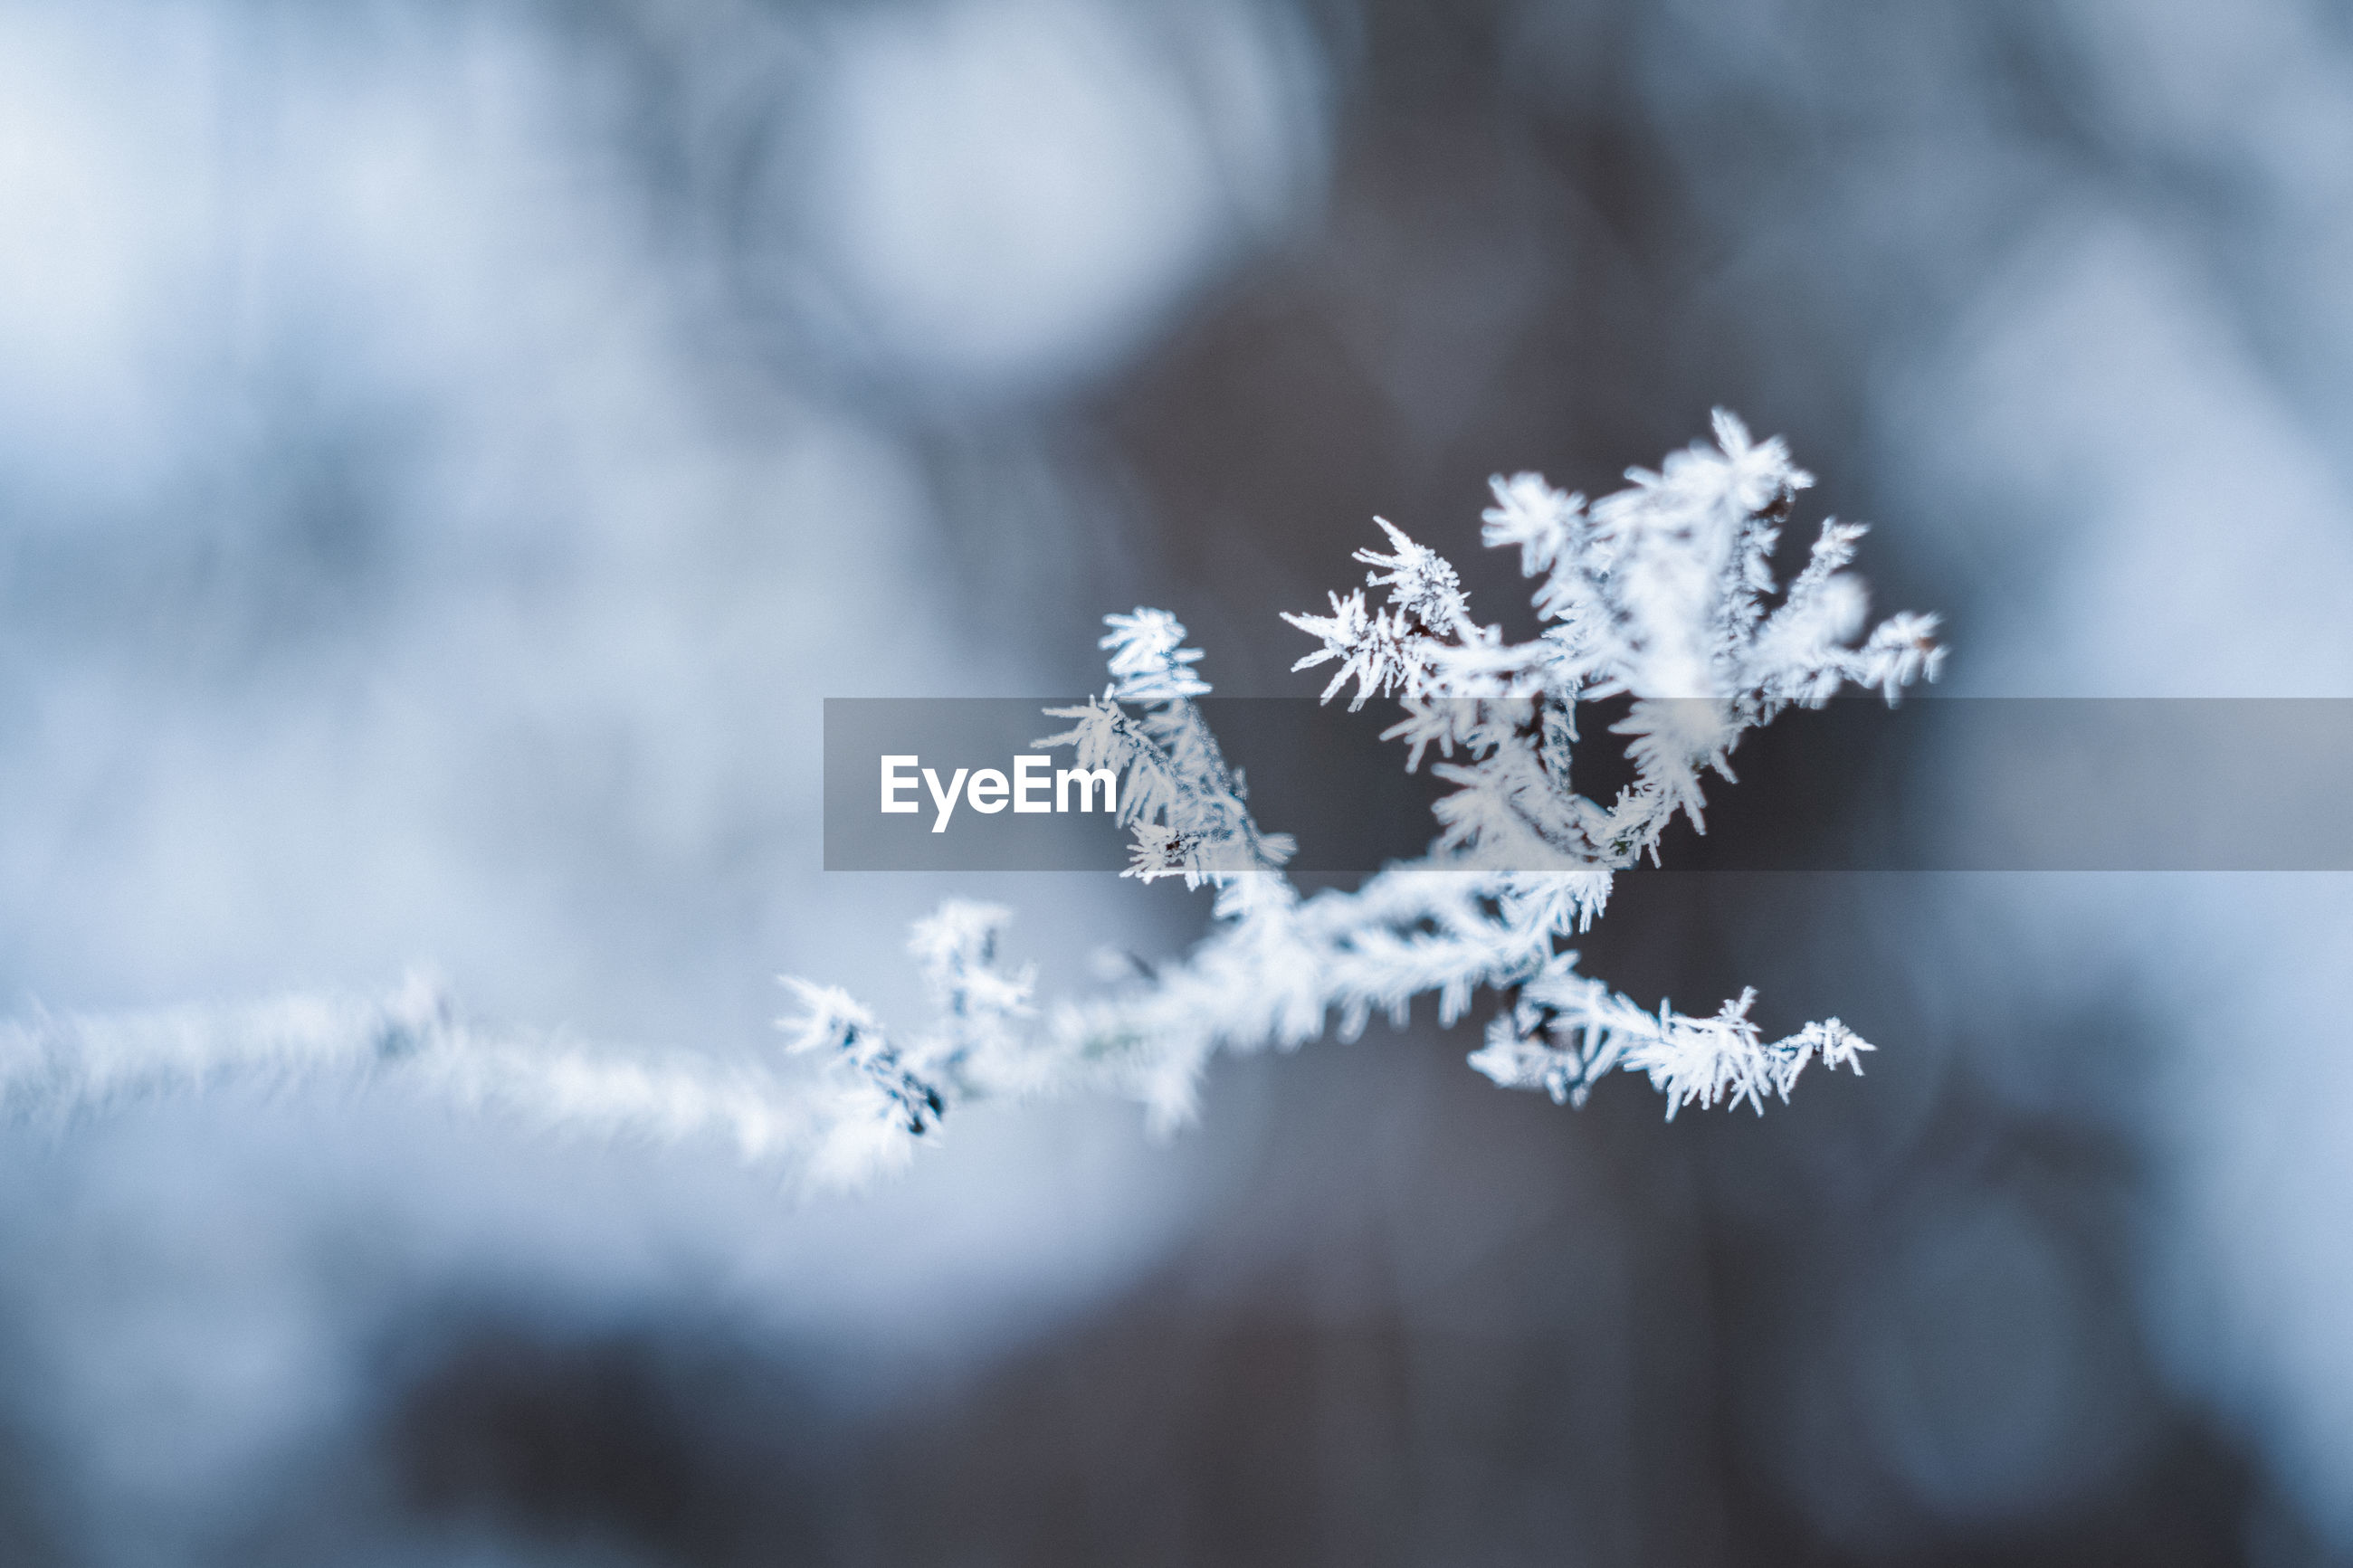 cold temperature, winter, snow, frozen, beauty in nature, nature, no people, plant, close-up, day, ice, white color, selective focus, focus on foreground, fragility, vulnerability, outdoors, snowflake, tree, extreme weather, blizzard